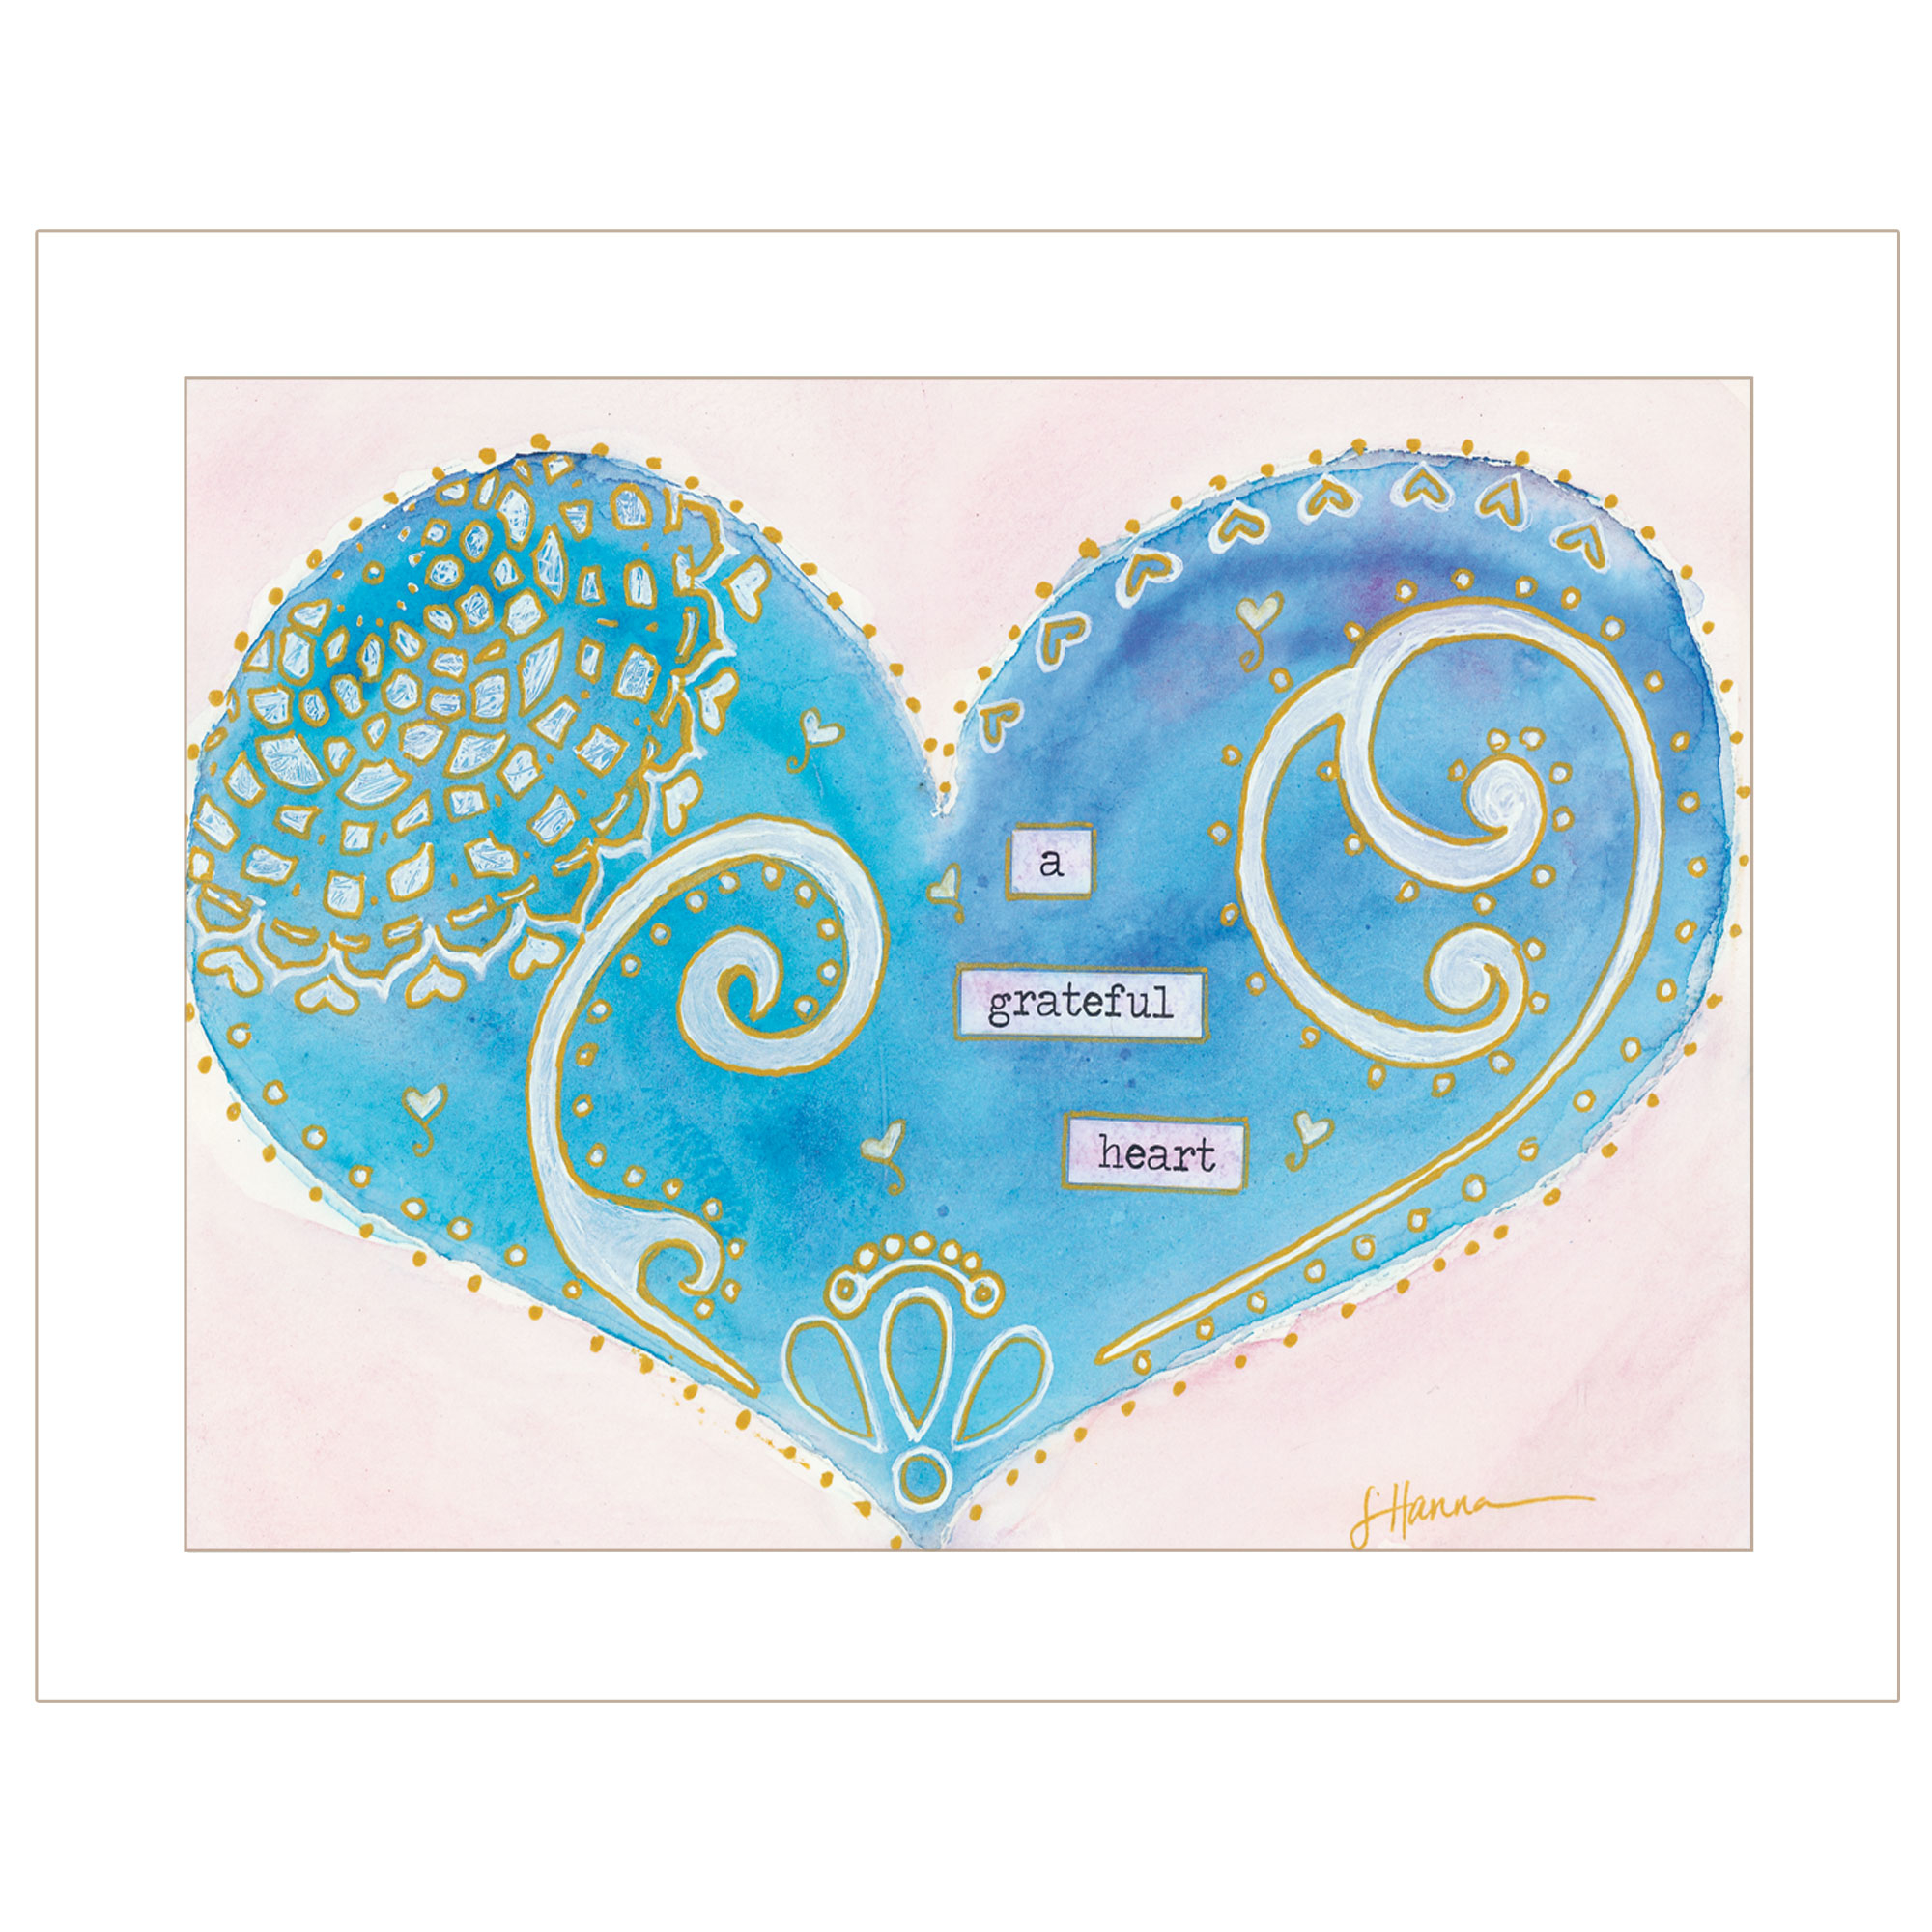 """Grateful Heart"" by artist Lorri Hanna. This decorative white framed print 19""x15"" of a heart with the script ""a Grateful Heart"" with added designs of hearts, swirls and blocks. Prints are UV coated (glass is not needed) and arrives ready to hang. Textured Artwork with a 'rolled on' acid-free acrylic coating to create a canvas painting effect. UV Protectant Coating protects artwork from fading. No glass is necessary. Moulding adds natural beauty to the framed art. Frame is keyholed for the easy hanging. This Fine Home Decor piece made in the USA by Woman Owned Business (Wbe) is a perfect gift??for a friend or relative."